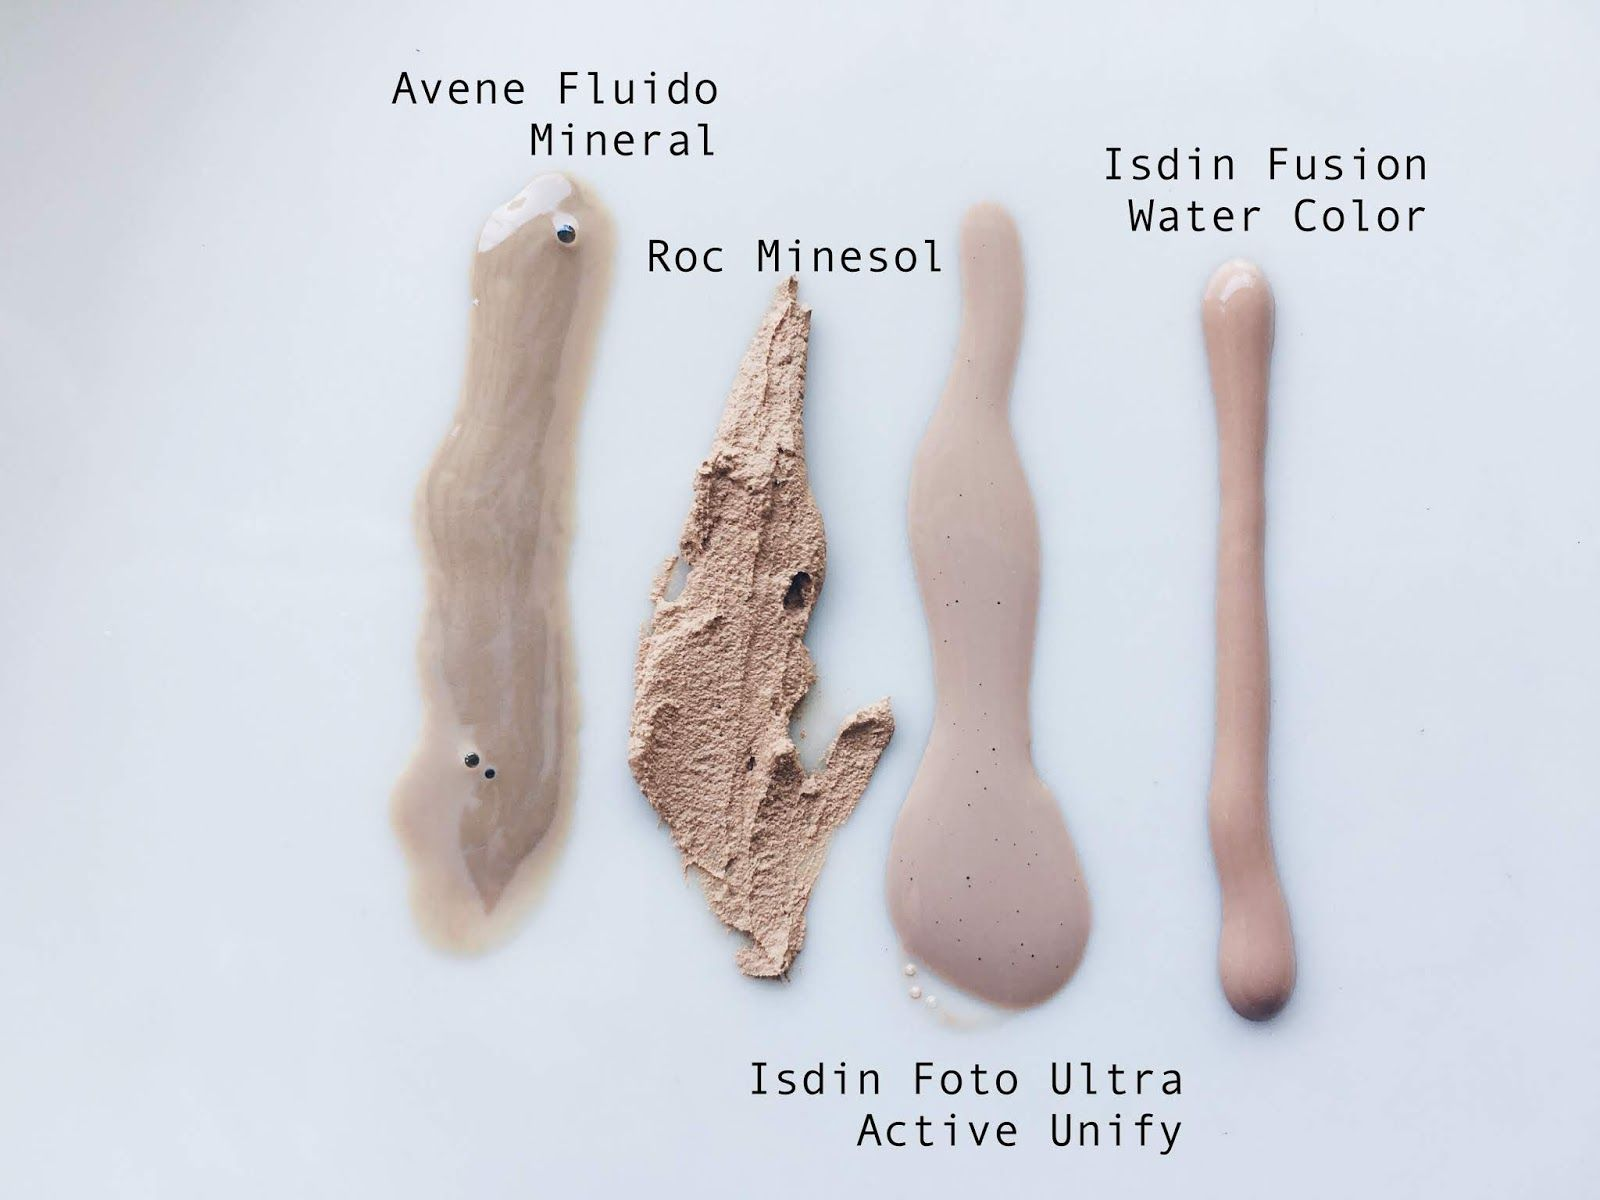 Isdin Fusion Water Color Color Unify Y Avene Fluido Mineral Tres